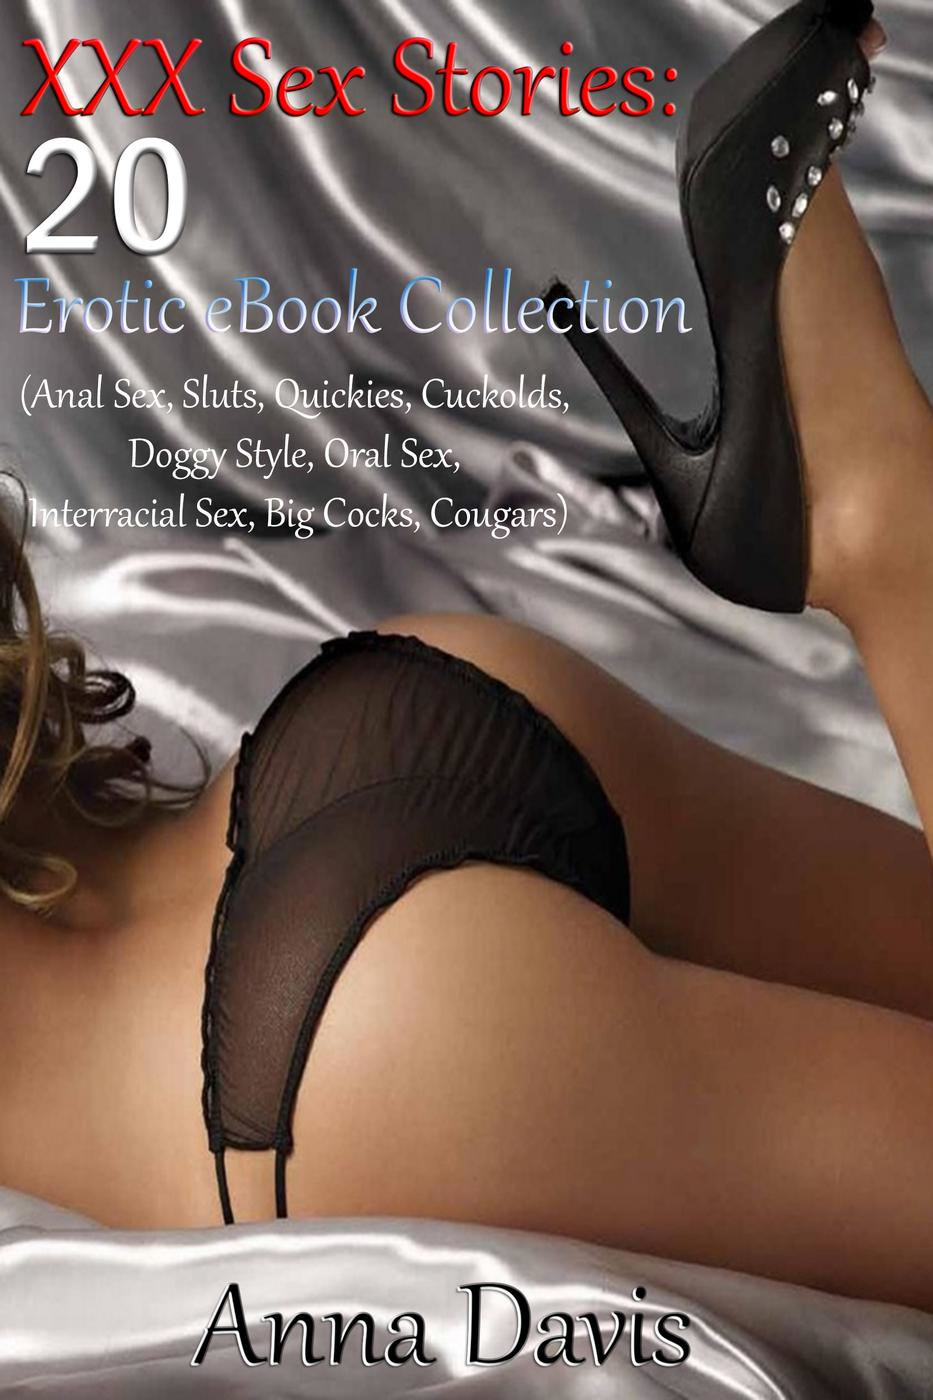 XXX Sex Stories: 20 Erotic eBook Collection